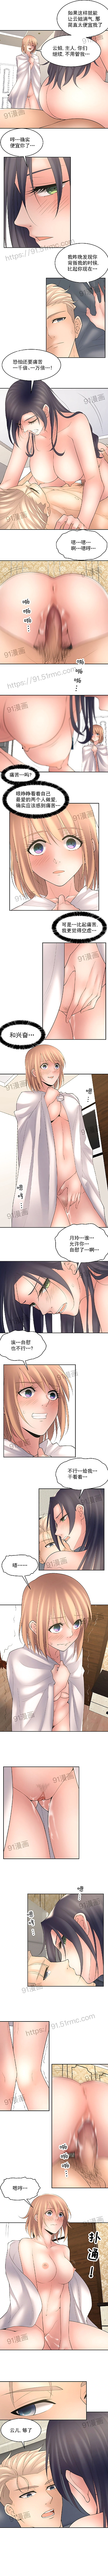 chinese manga 金鳞岂是池中物 49-114 Chinese, big breasts , blowjob  full-color